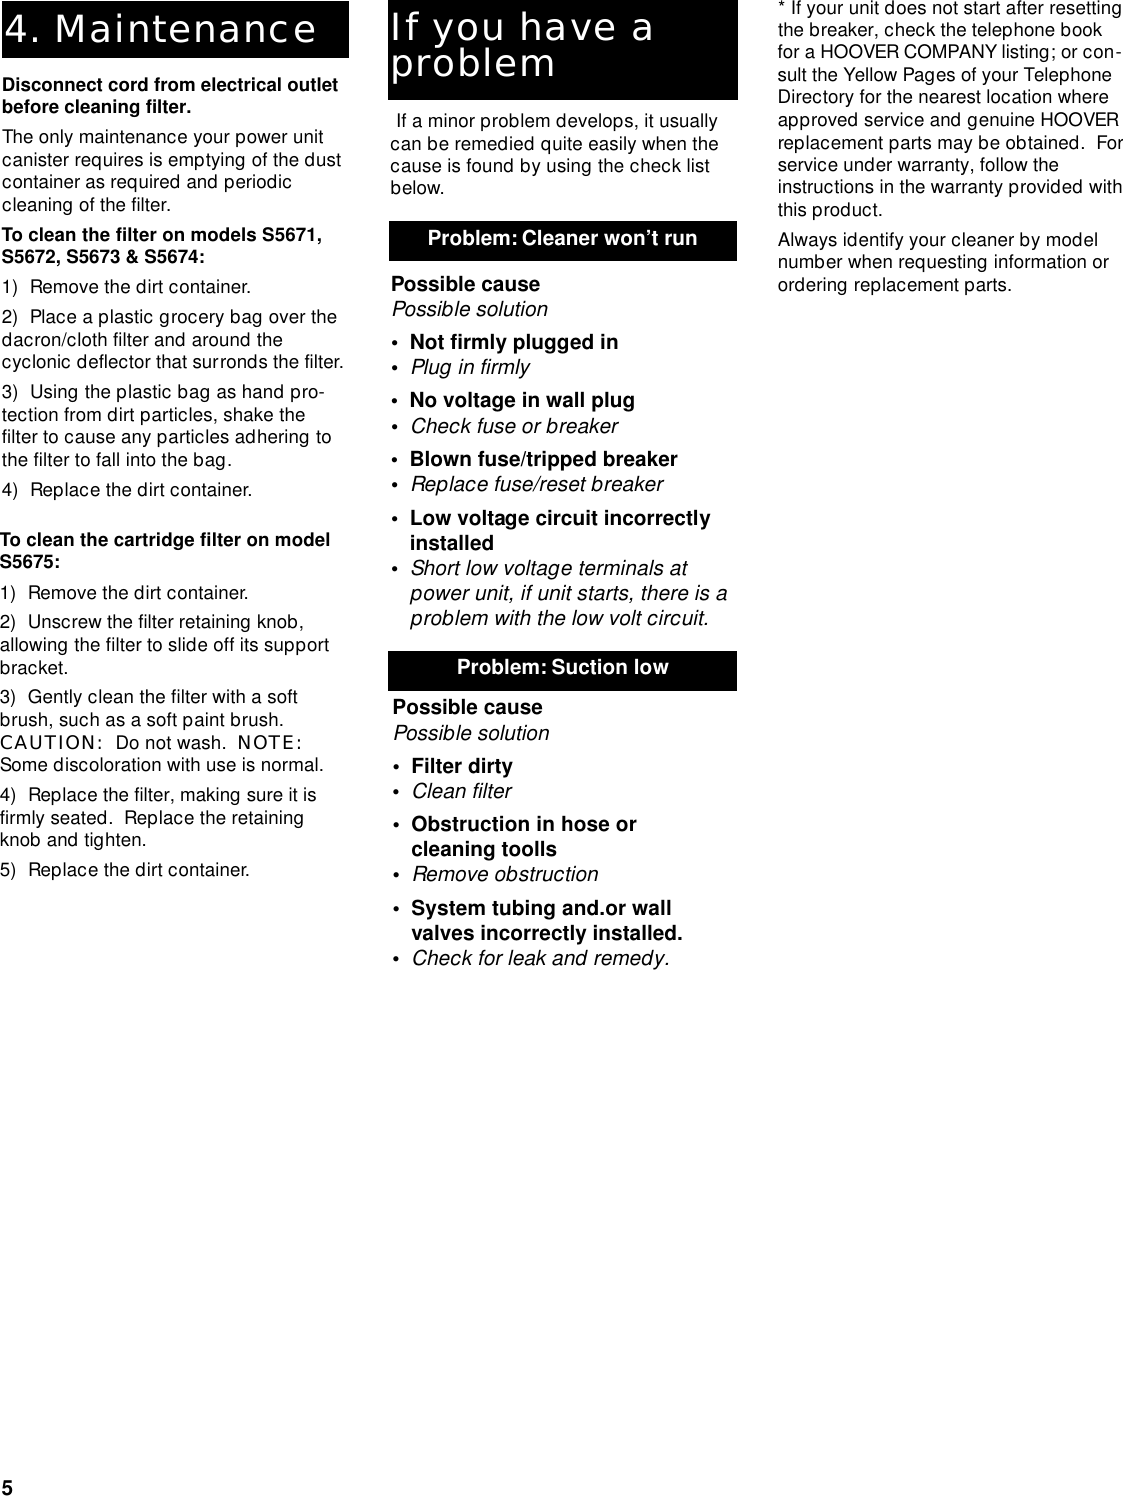 Hoover Central Vacuum Systems Users Manual Wiring Diagram Page 5 Of 12